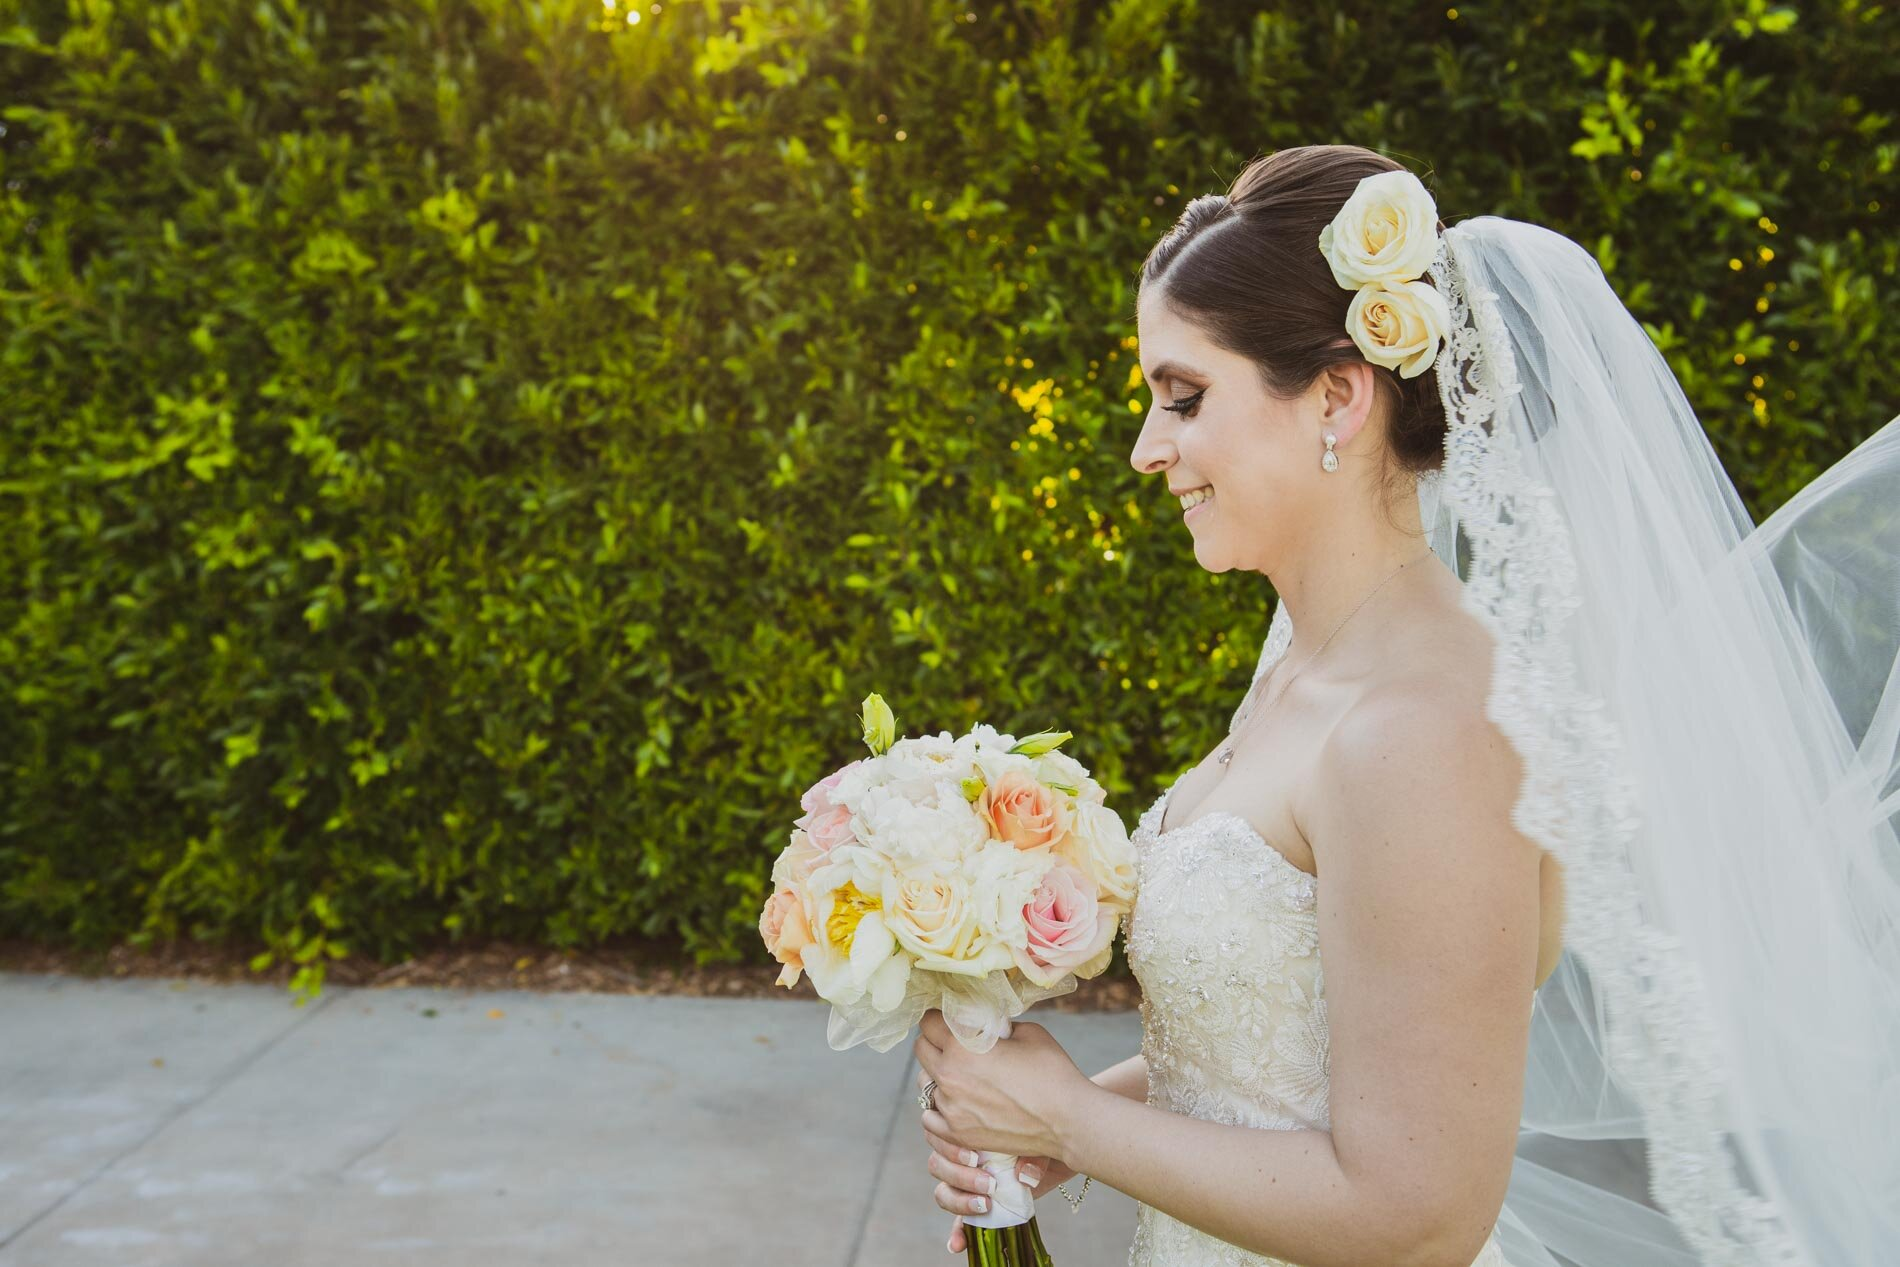 dvrproductions.com - Weddings JC-23.jpg